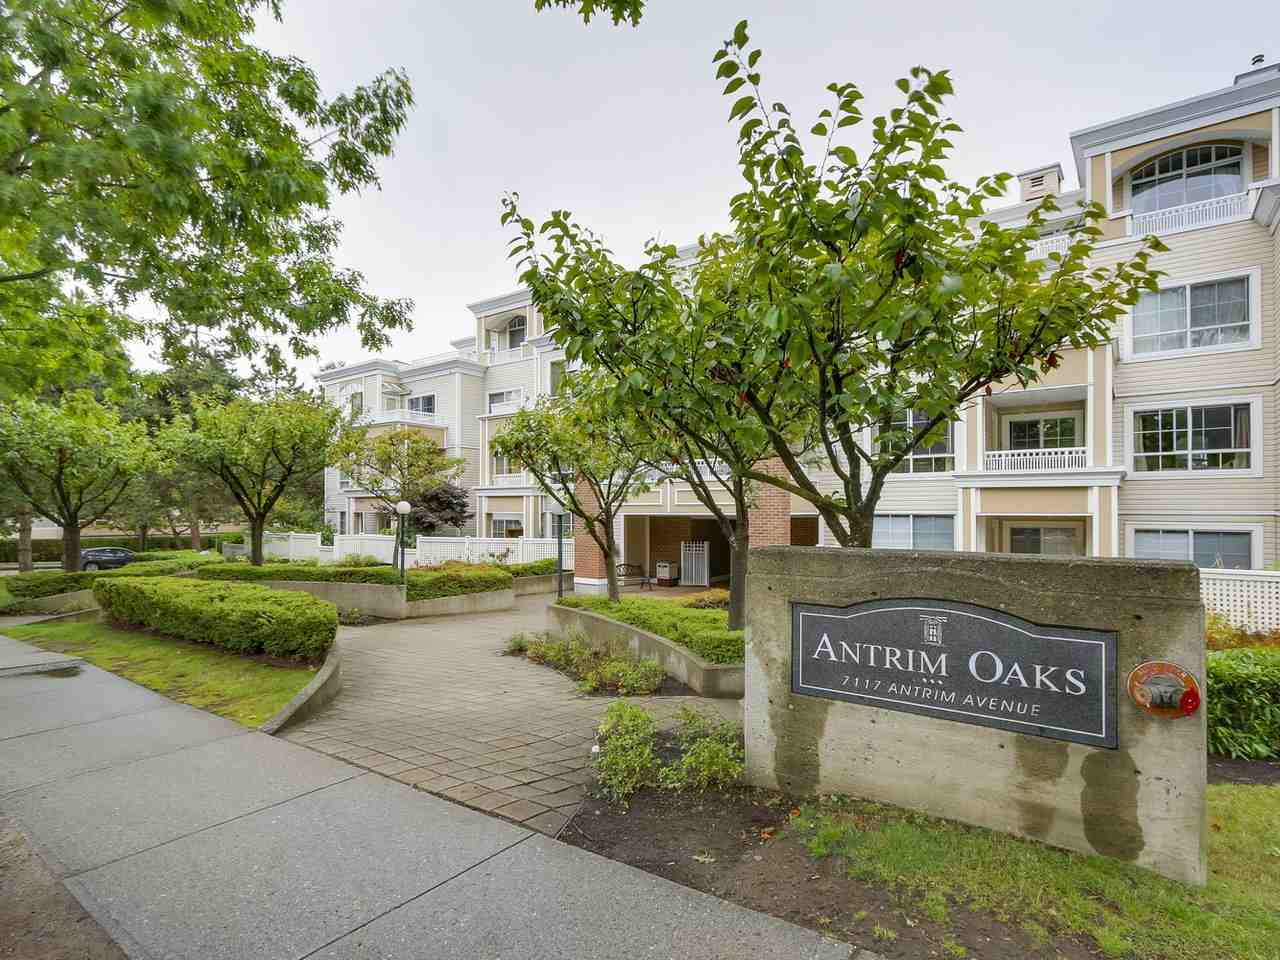 112 7117 ANTRIM AVENUE, Burnaby, BC, V5K 5K1 Primary Photo